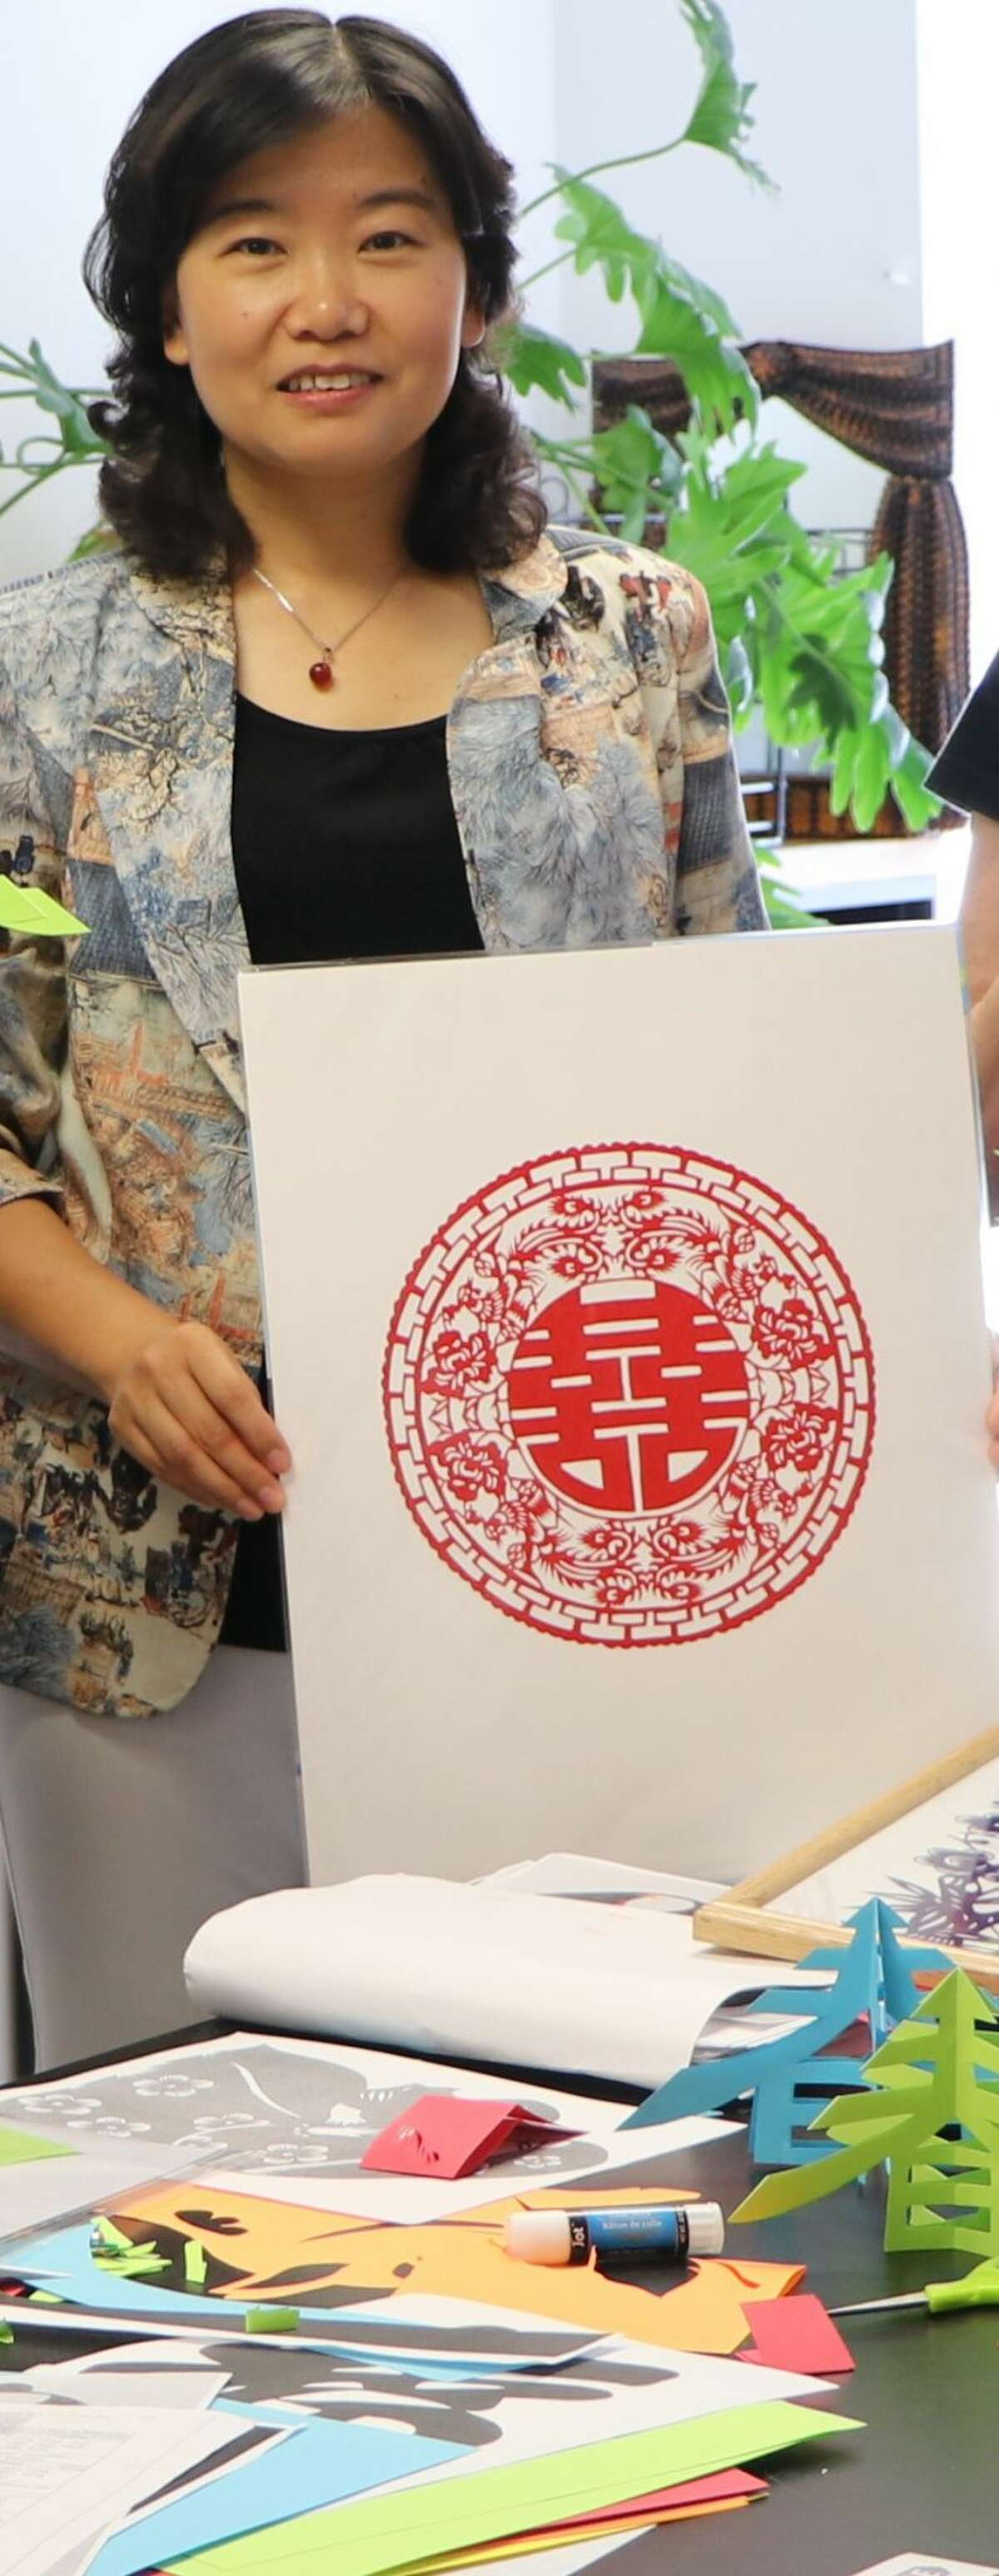 Jianling Yue, who is a master of Chinese papercutting. Yue is a a professor of Chinese language and culture at RPI. (Credits: New York Folklore Society)